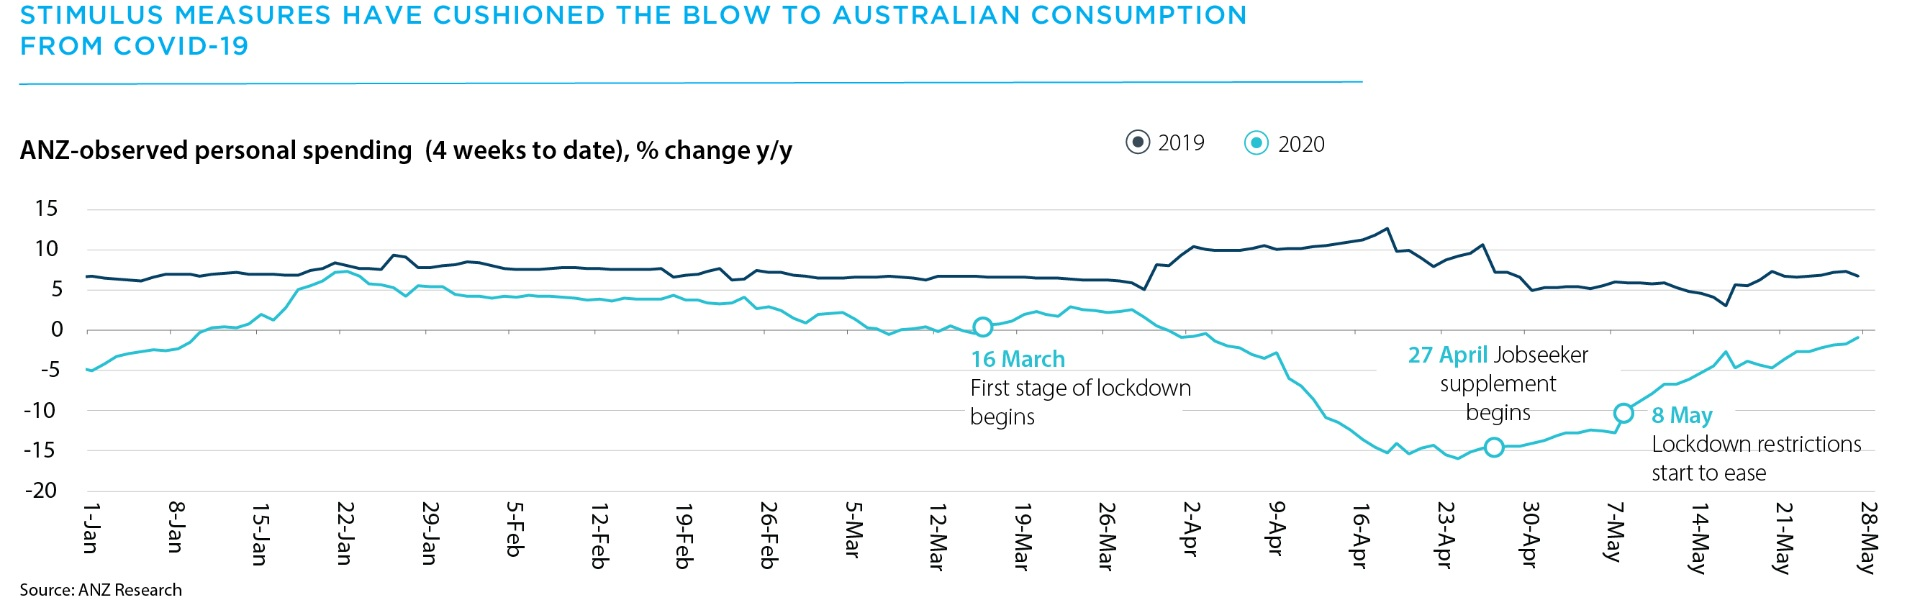 Stimulus measures have cushioned the blow to Australian consumption from Covid-19.